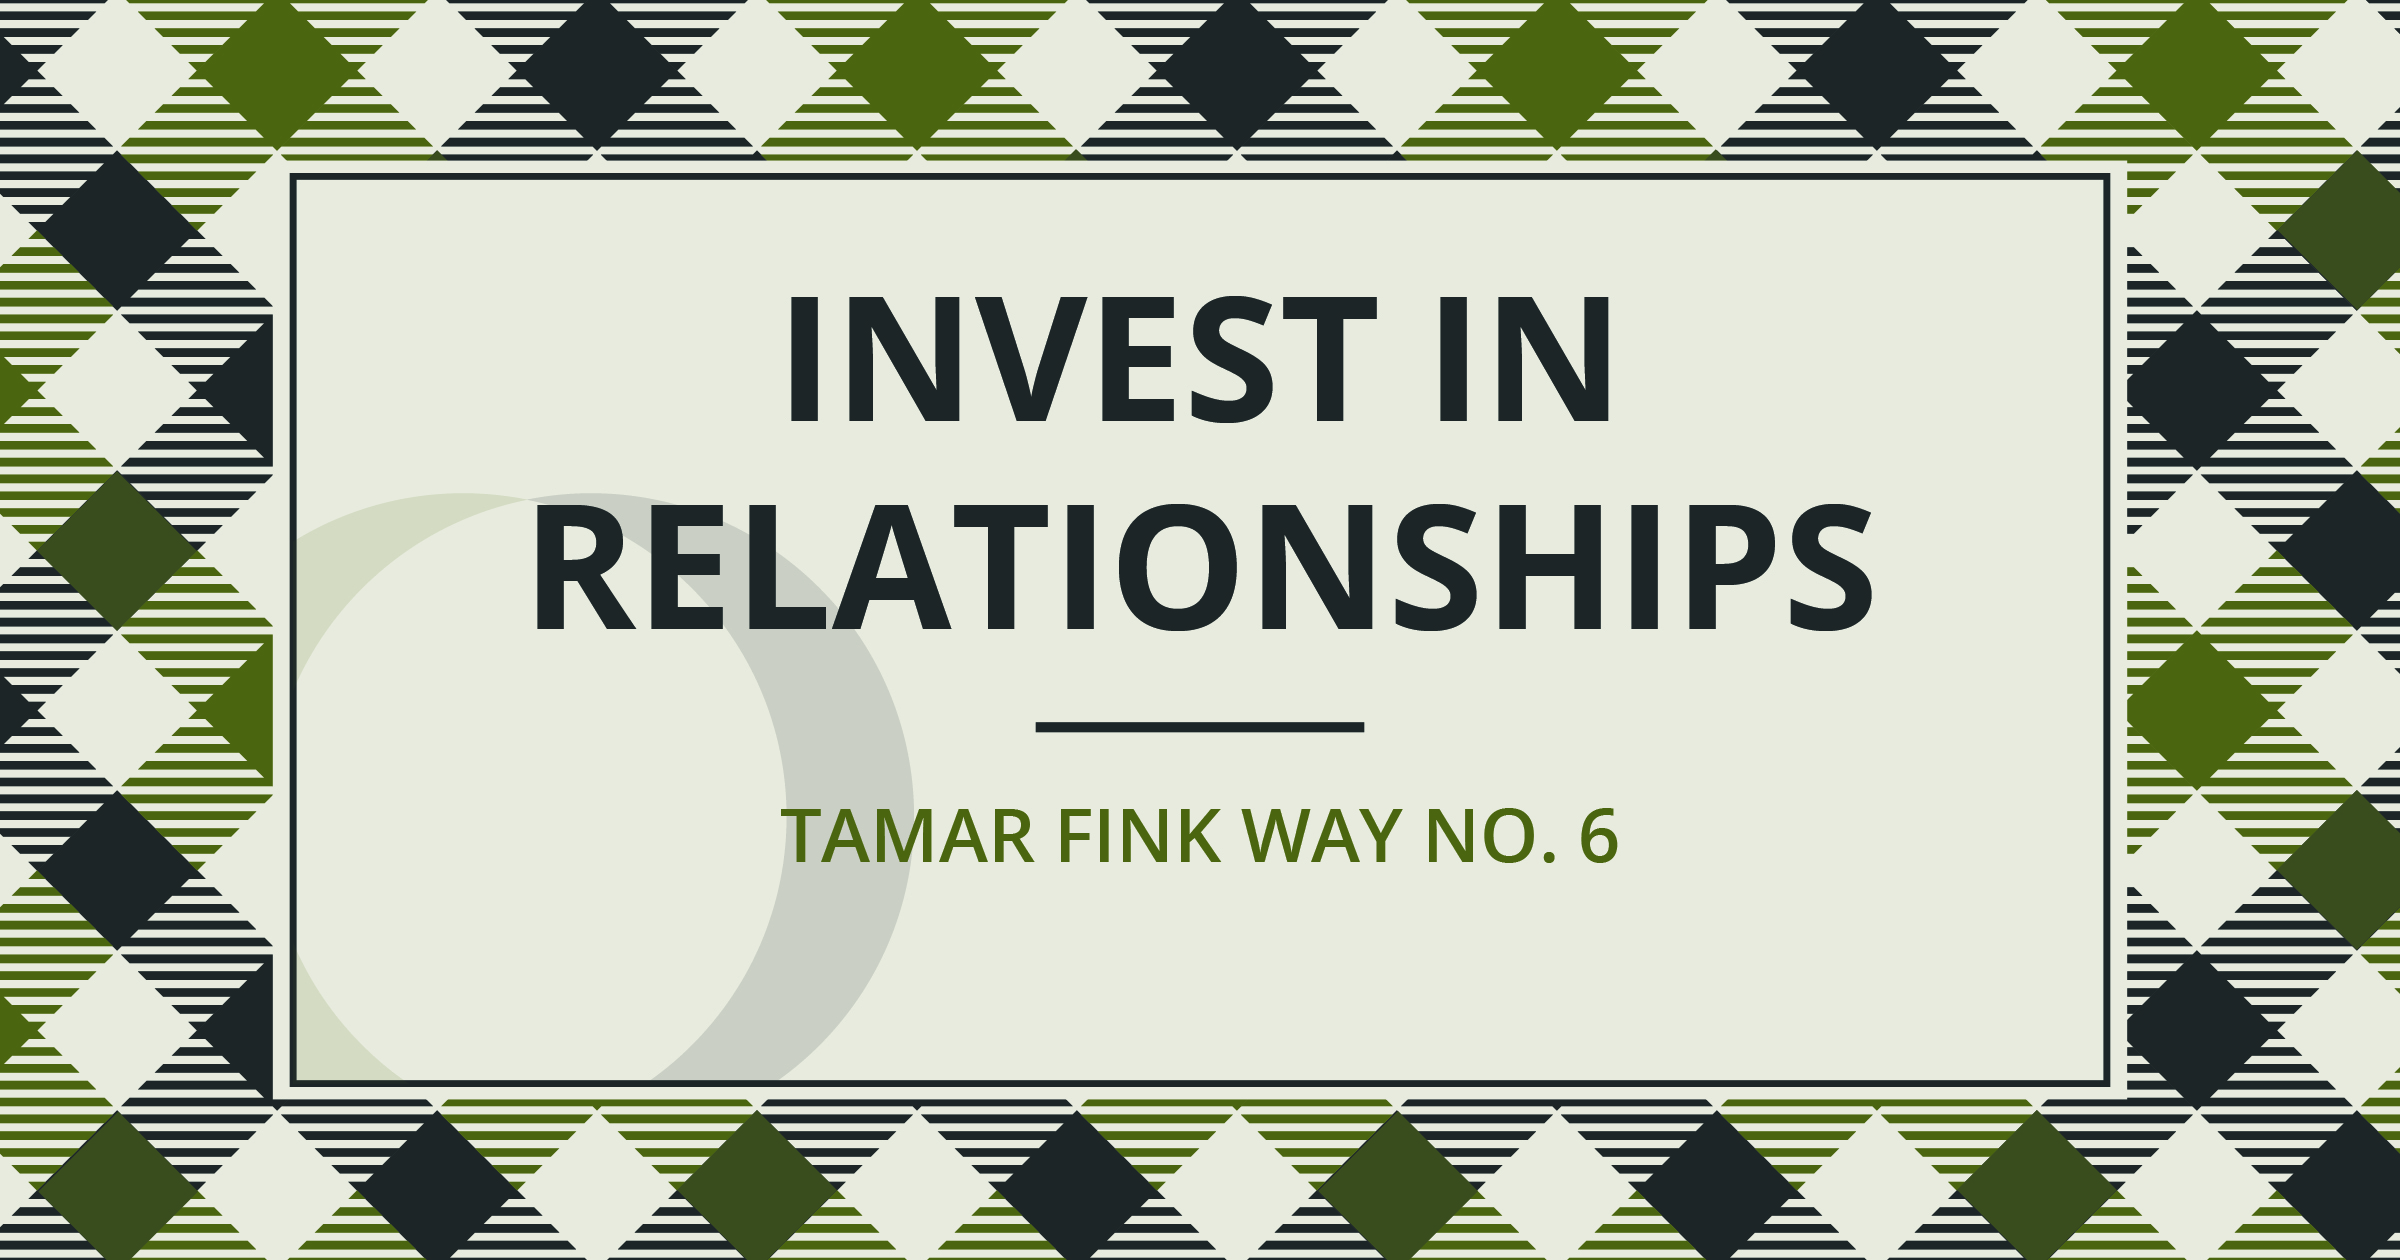 The Tamar Fink Way – #6